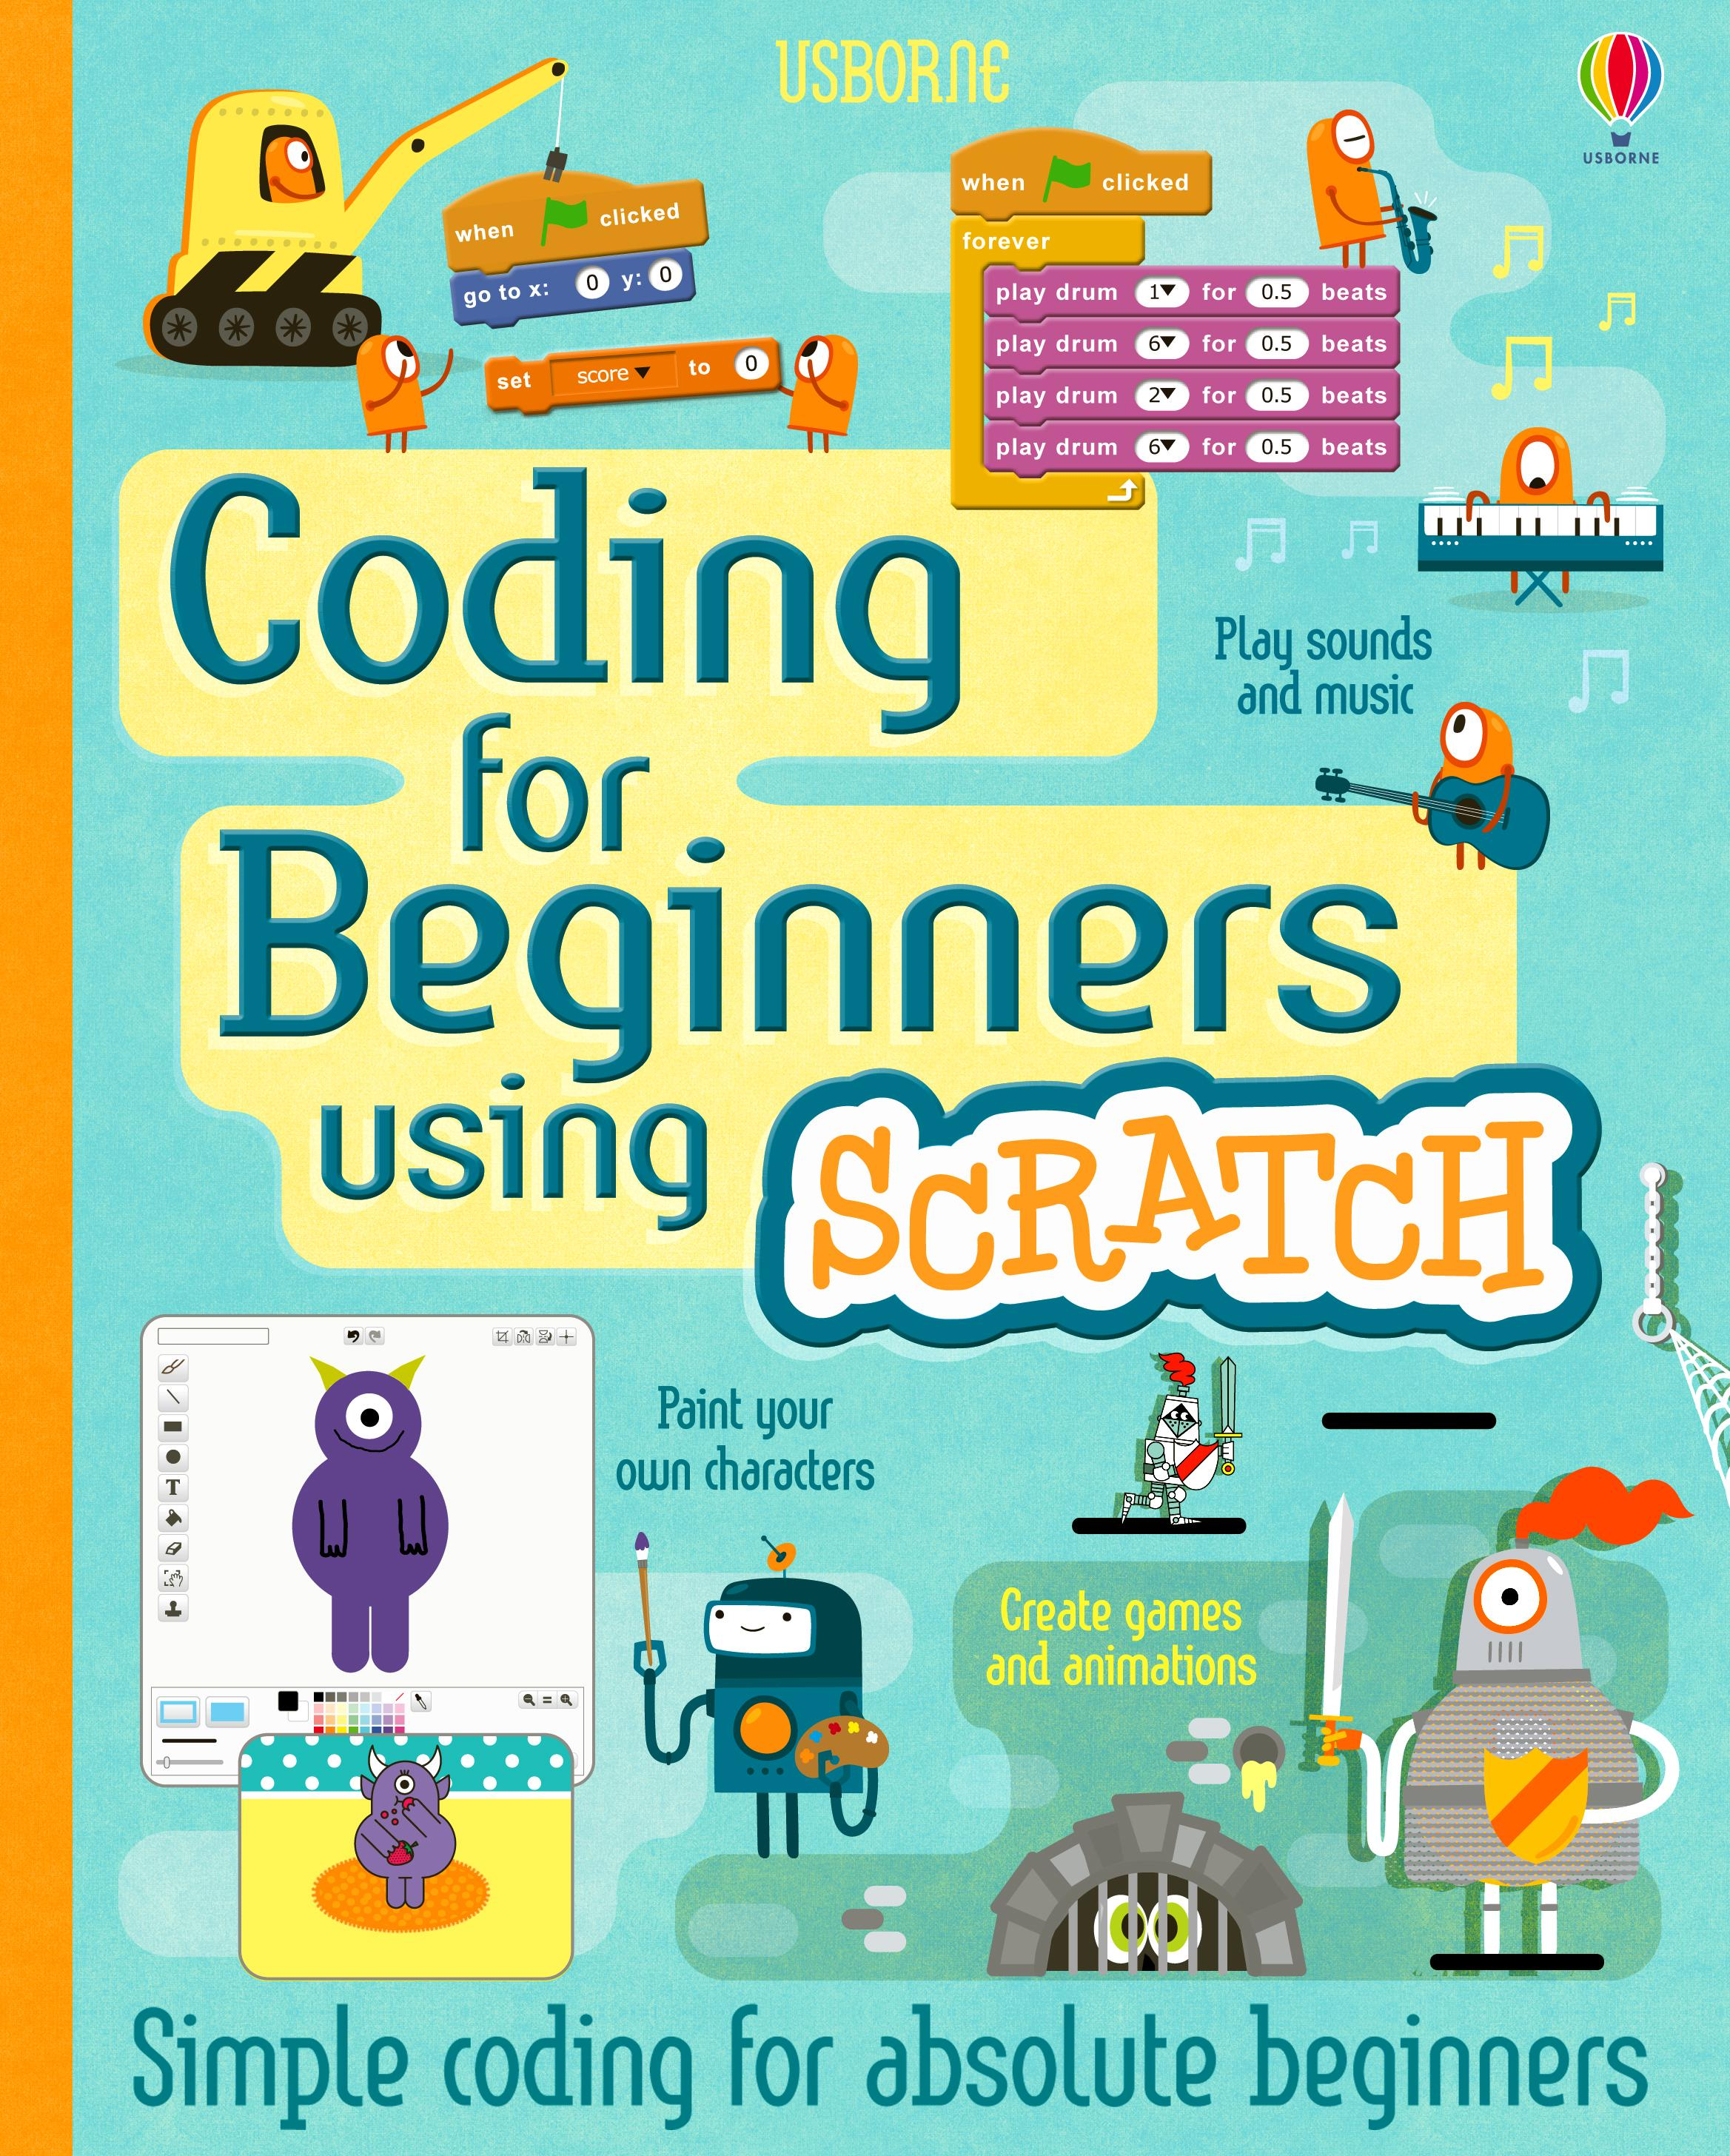 Coding for Beginners - Using Scratch: Coding for Beginners by Louie Stowell, Rosie Dickins, Shaw Nielsen, ISBN: 9781474915908